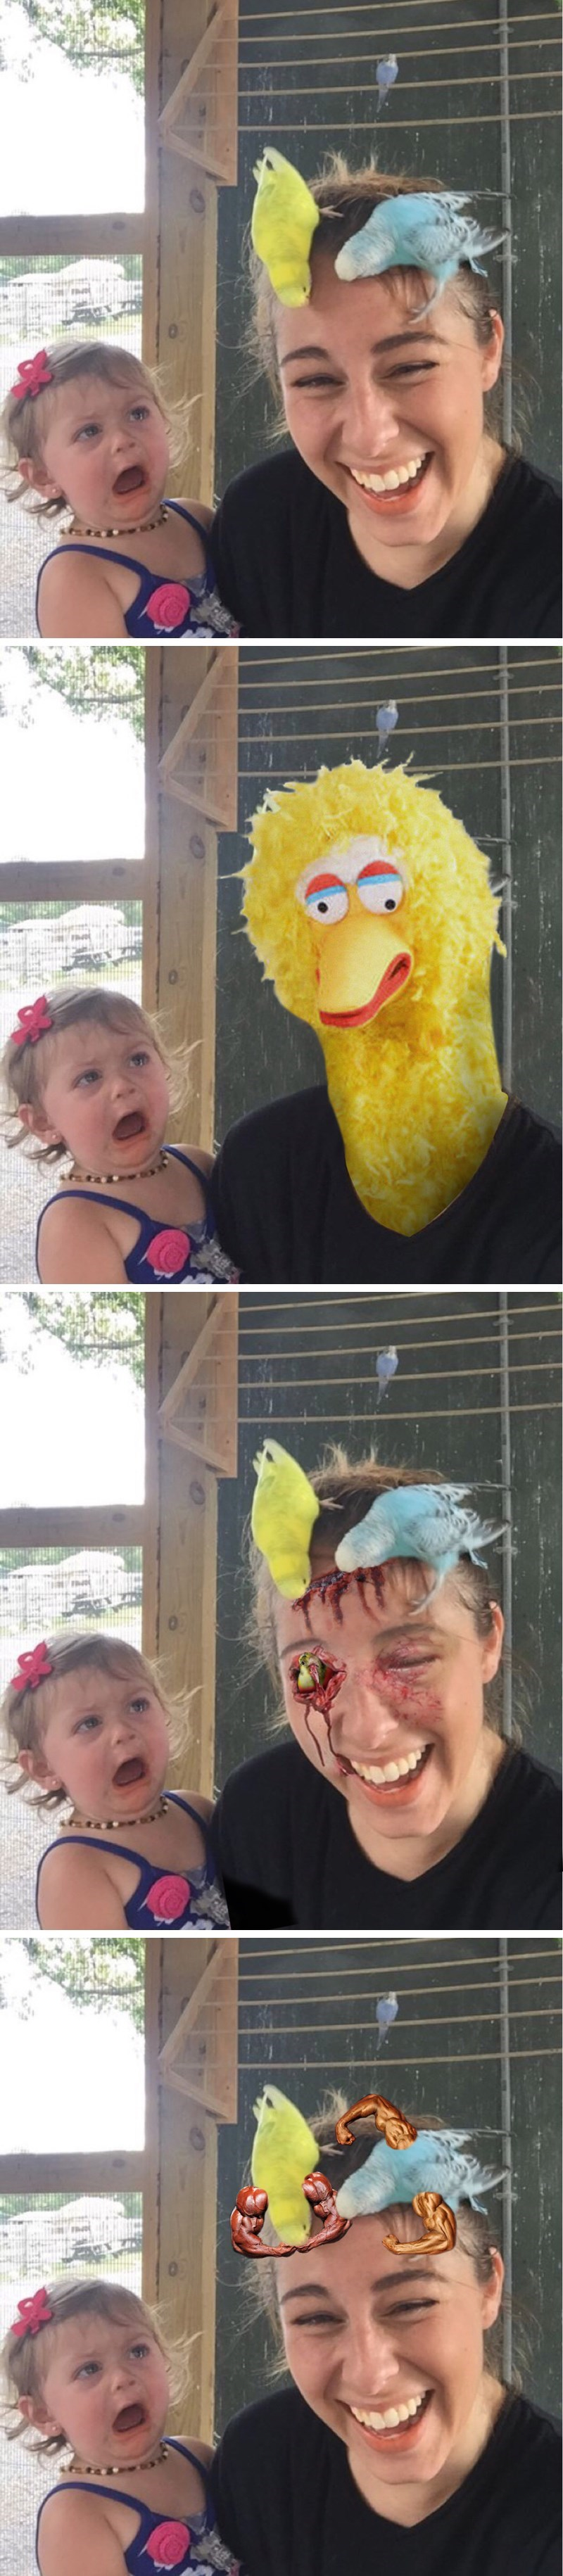 birds,photoshop,parenting